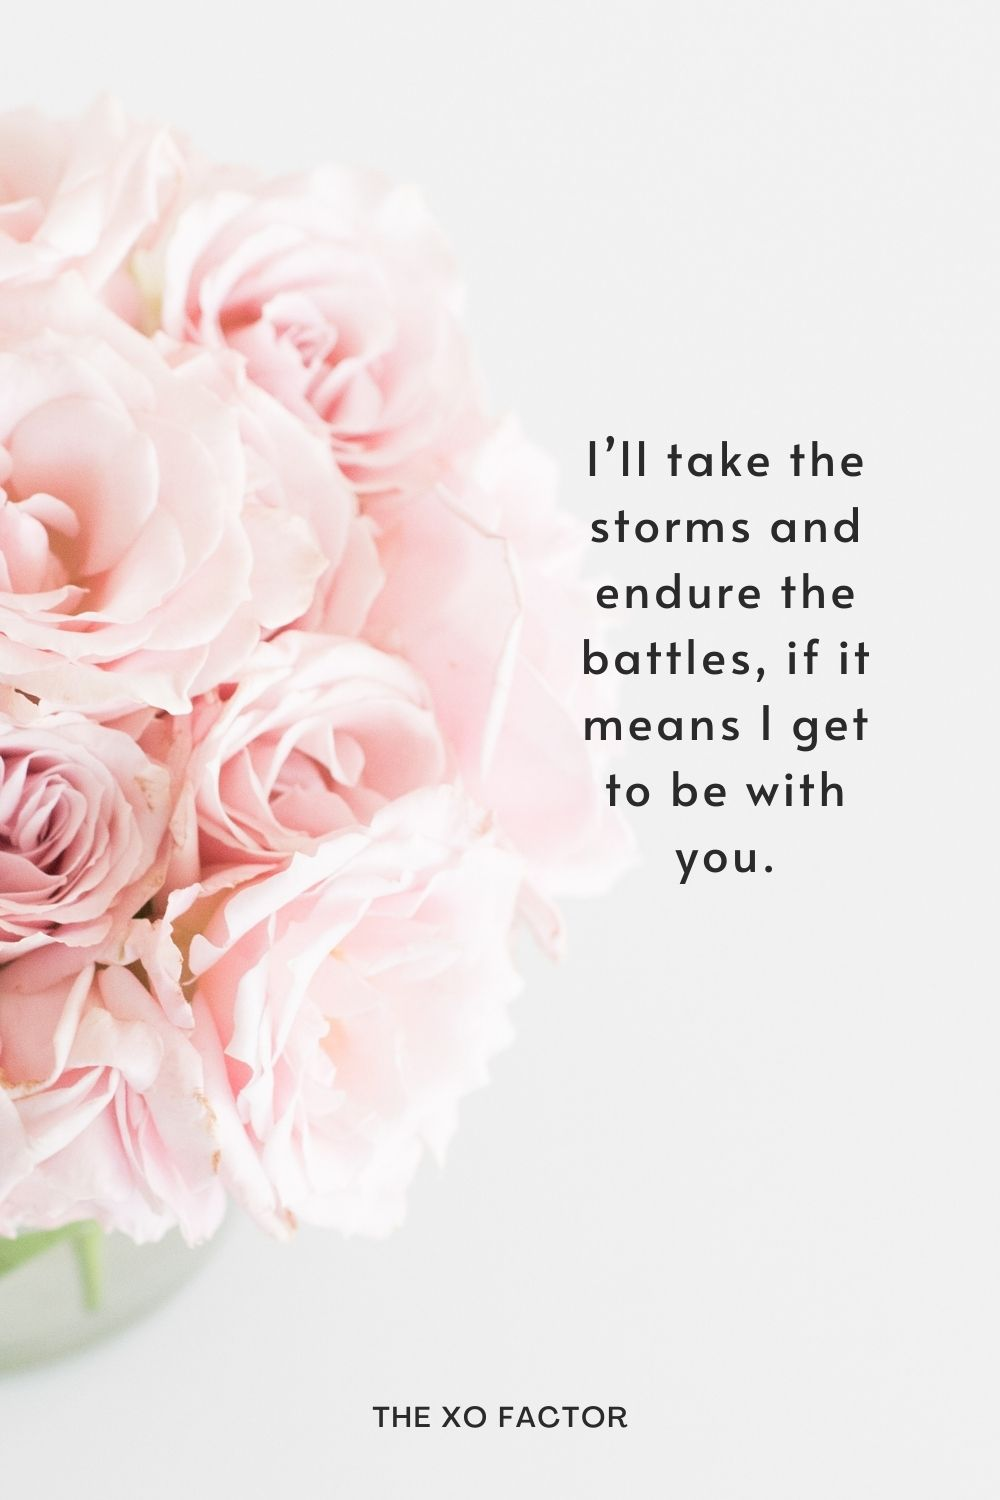 I'll take the storms and endure the battles, if it means I get to be with you.